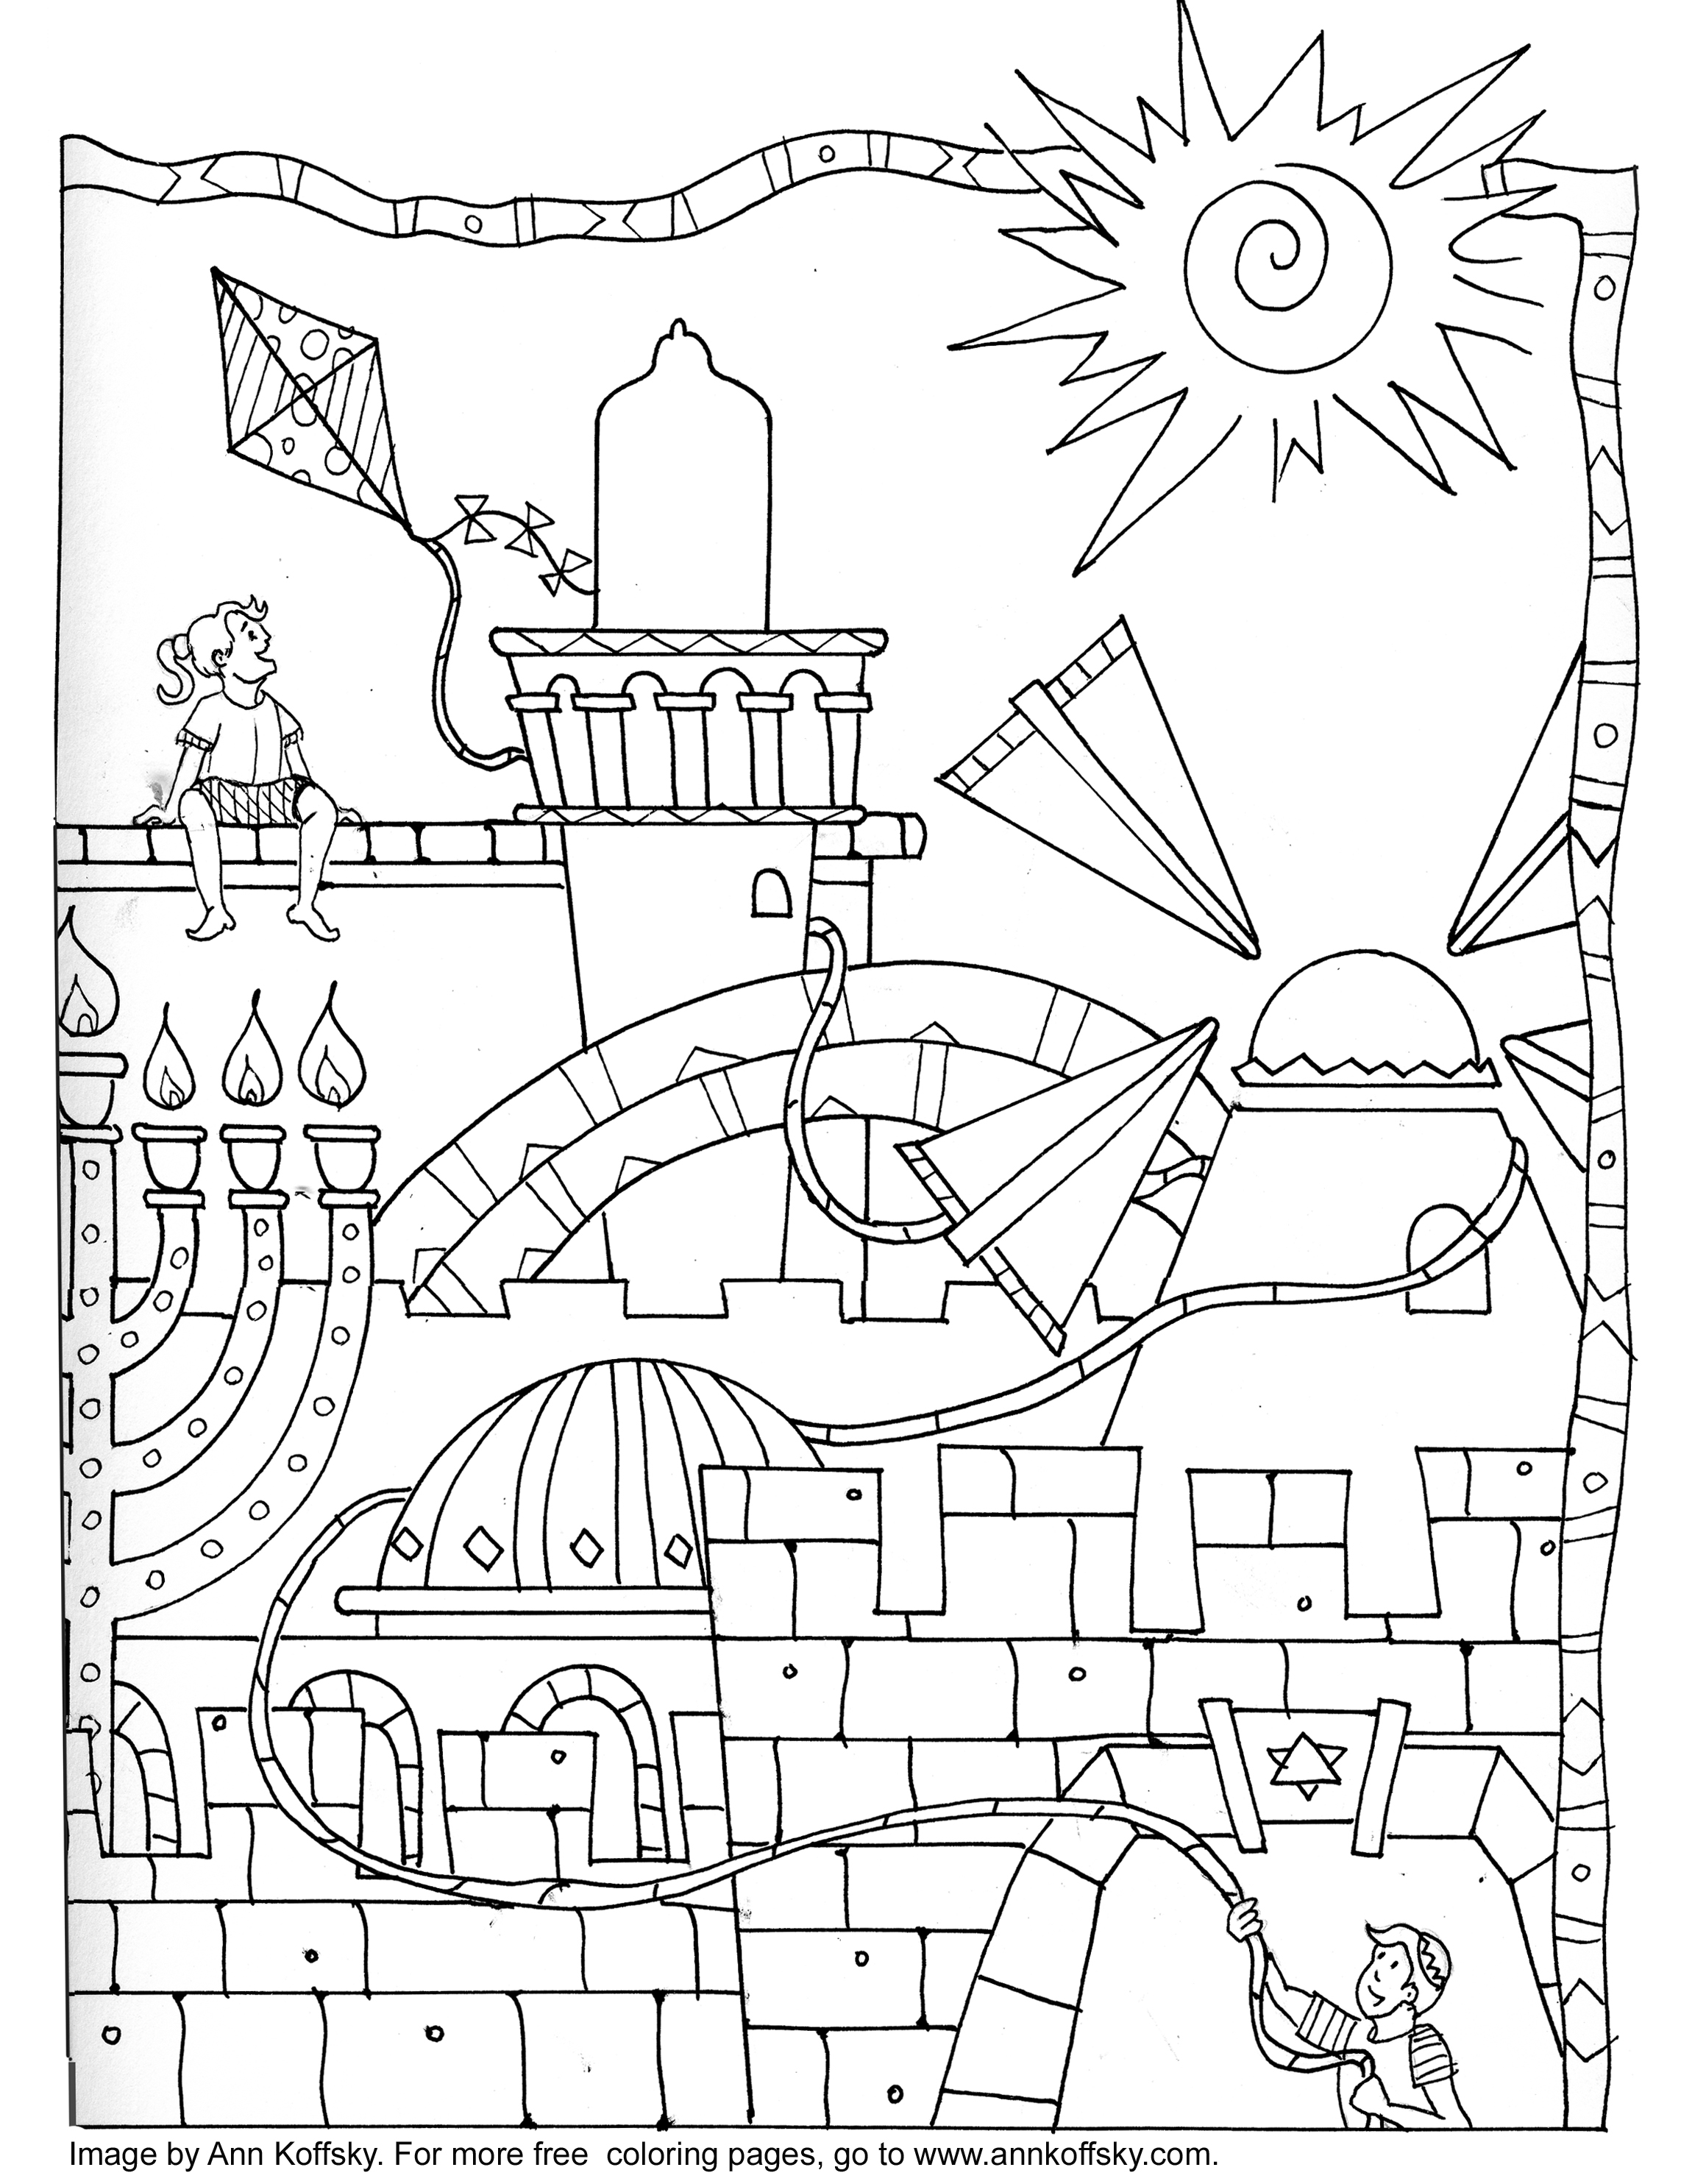 Hebrew School worksheets on Pinterest | Coloring Pages ...